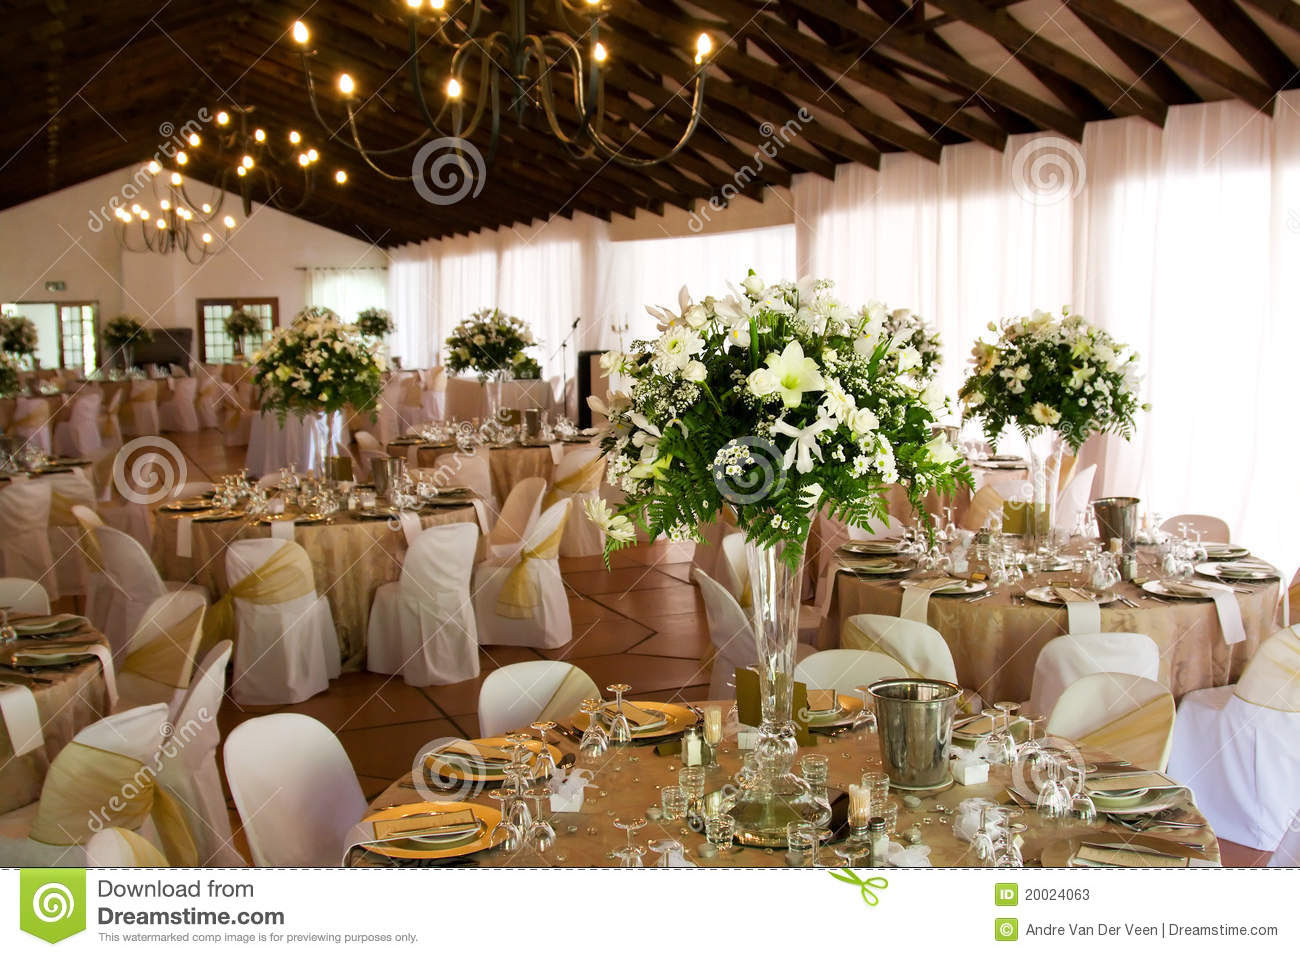 Misty Farms Ann Arbor Mi Wedding Venue Decorations Venue Decor